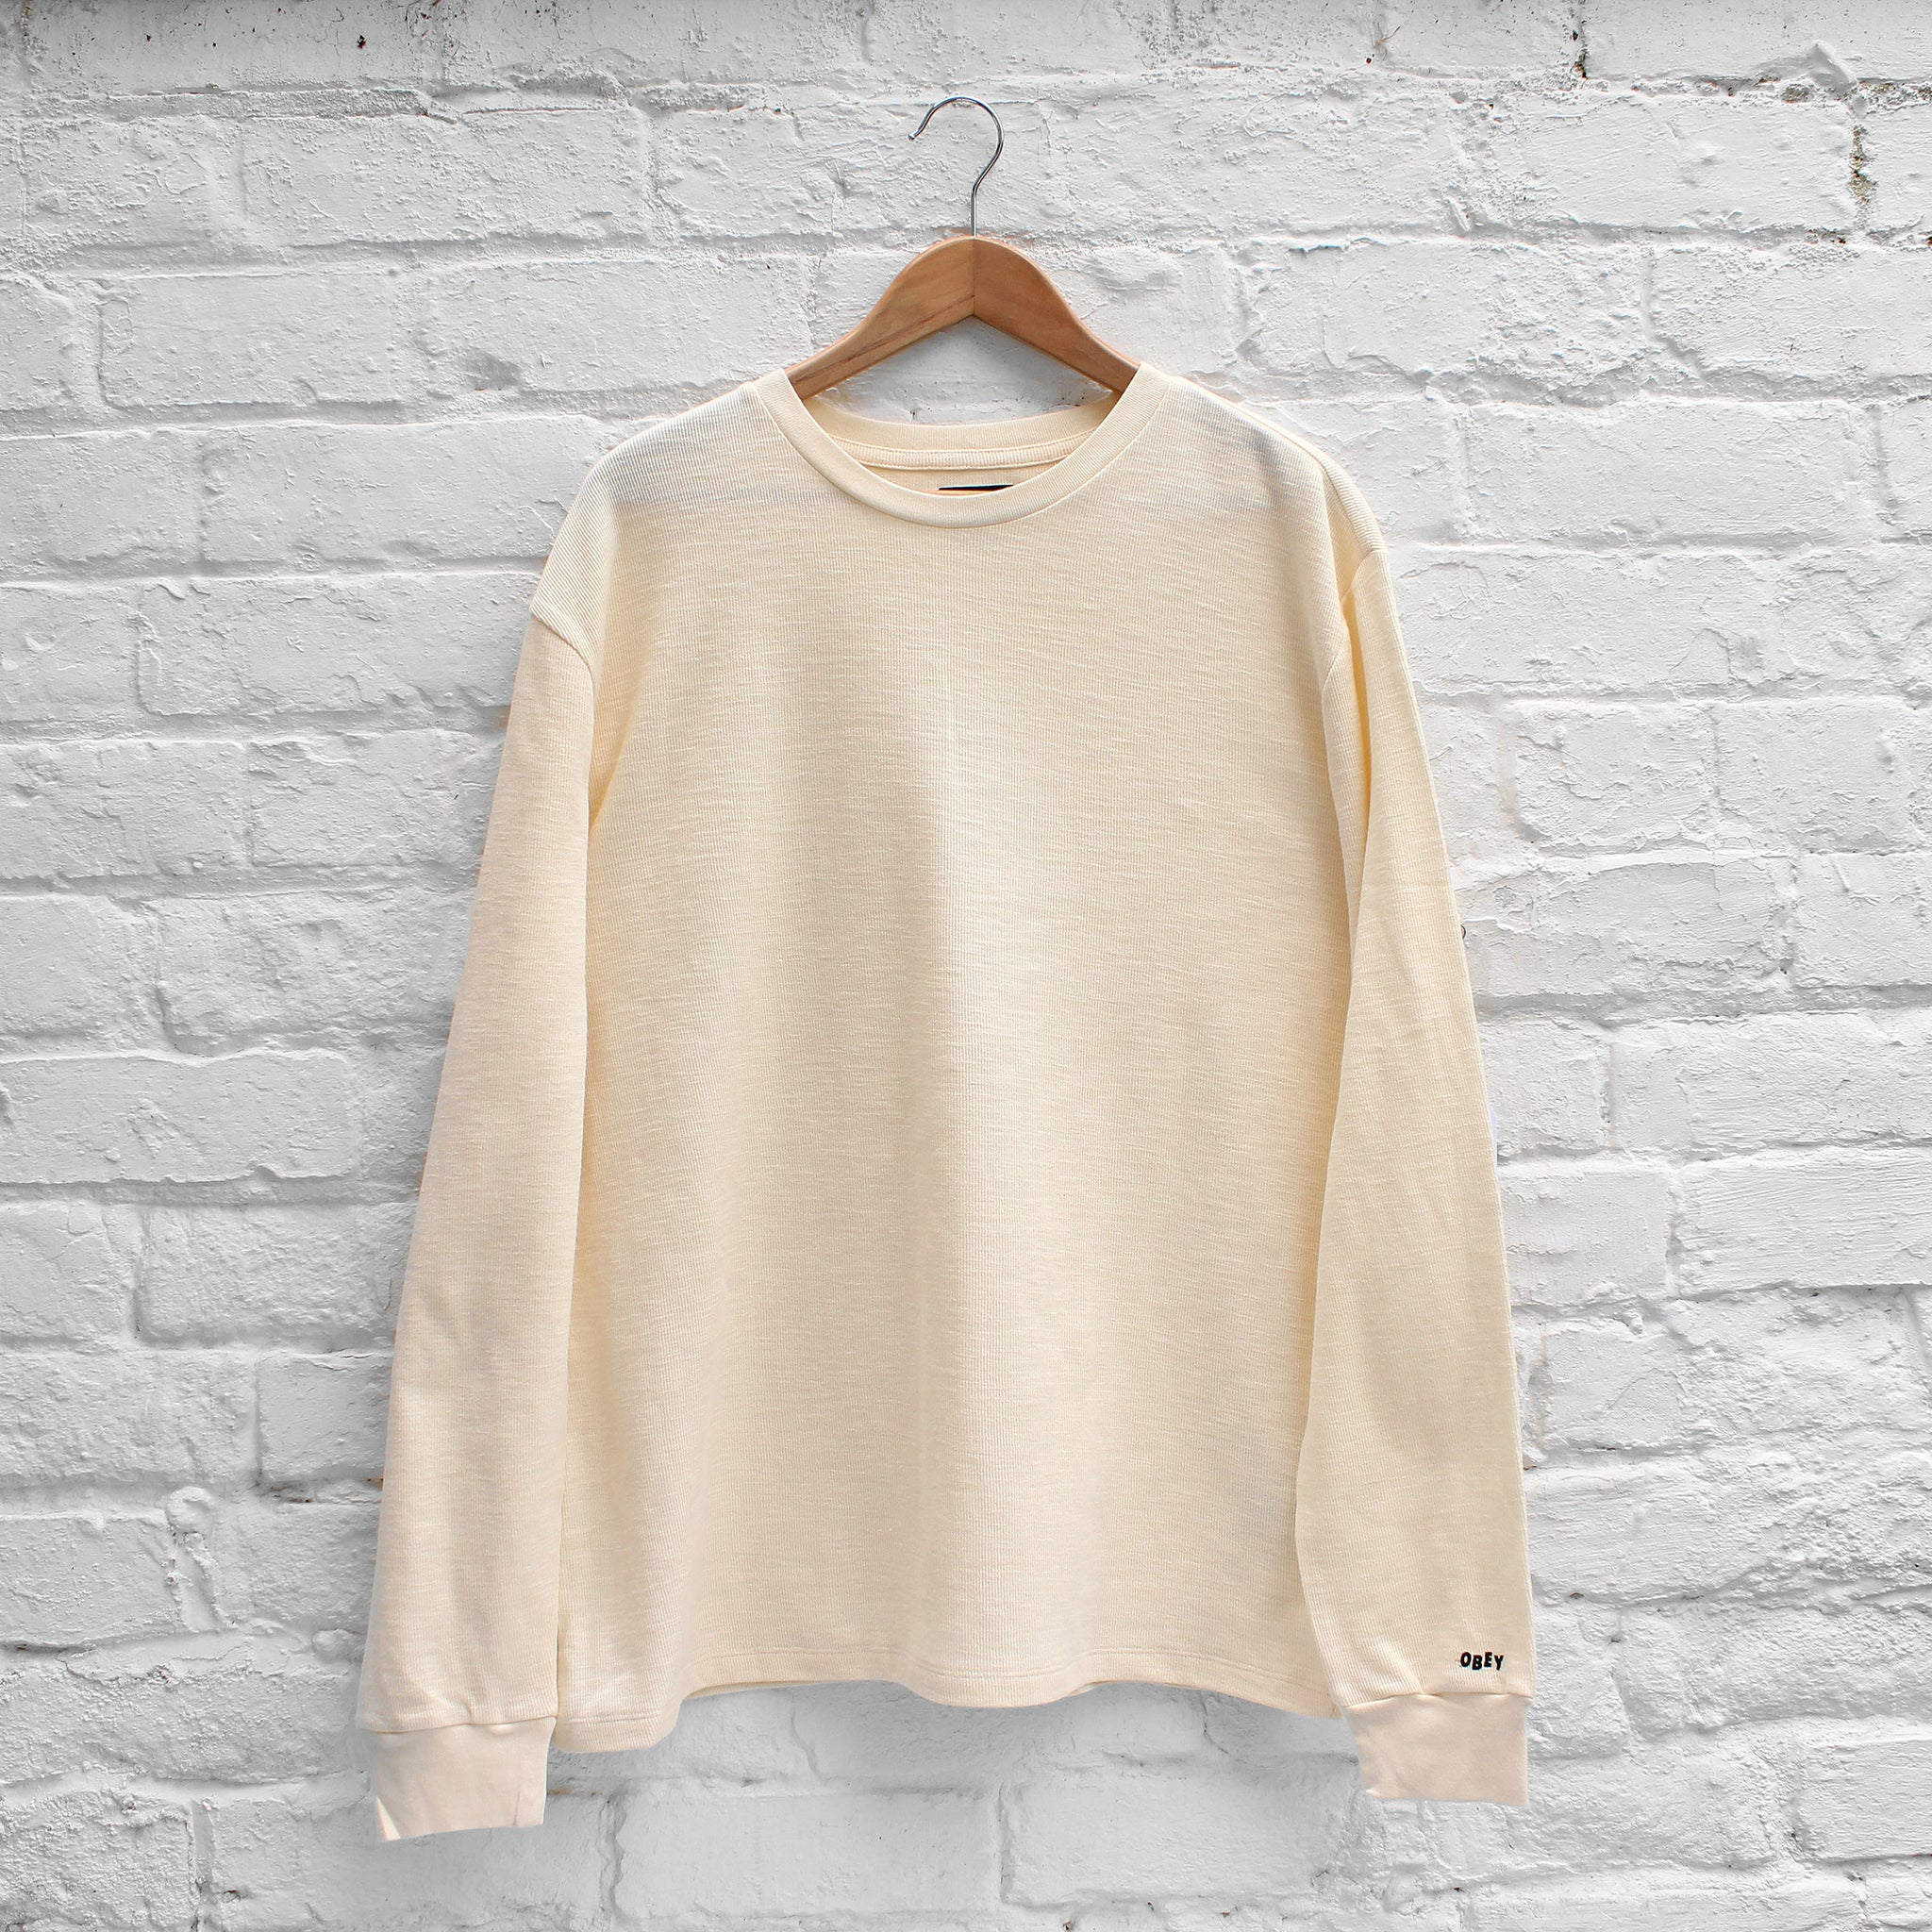 Obey Normal Long Sleeve Tee Cream